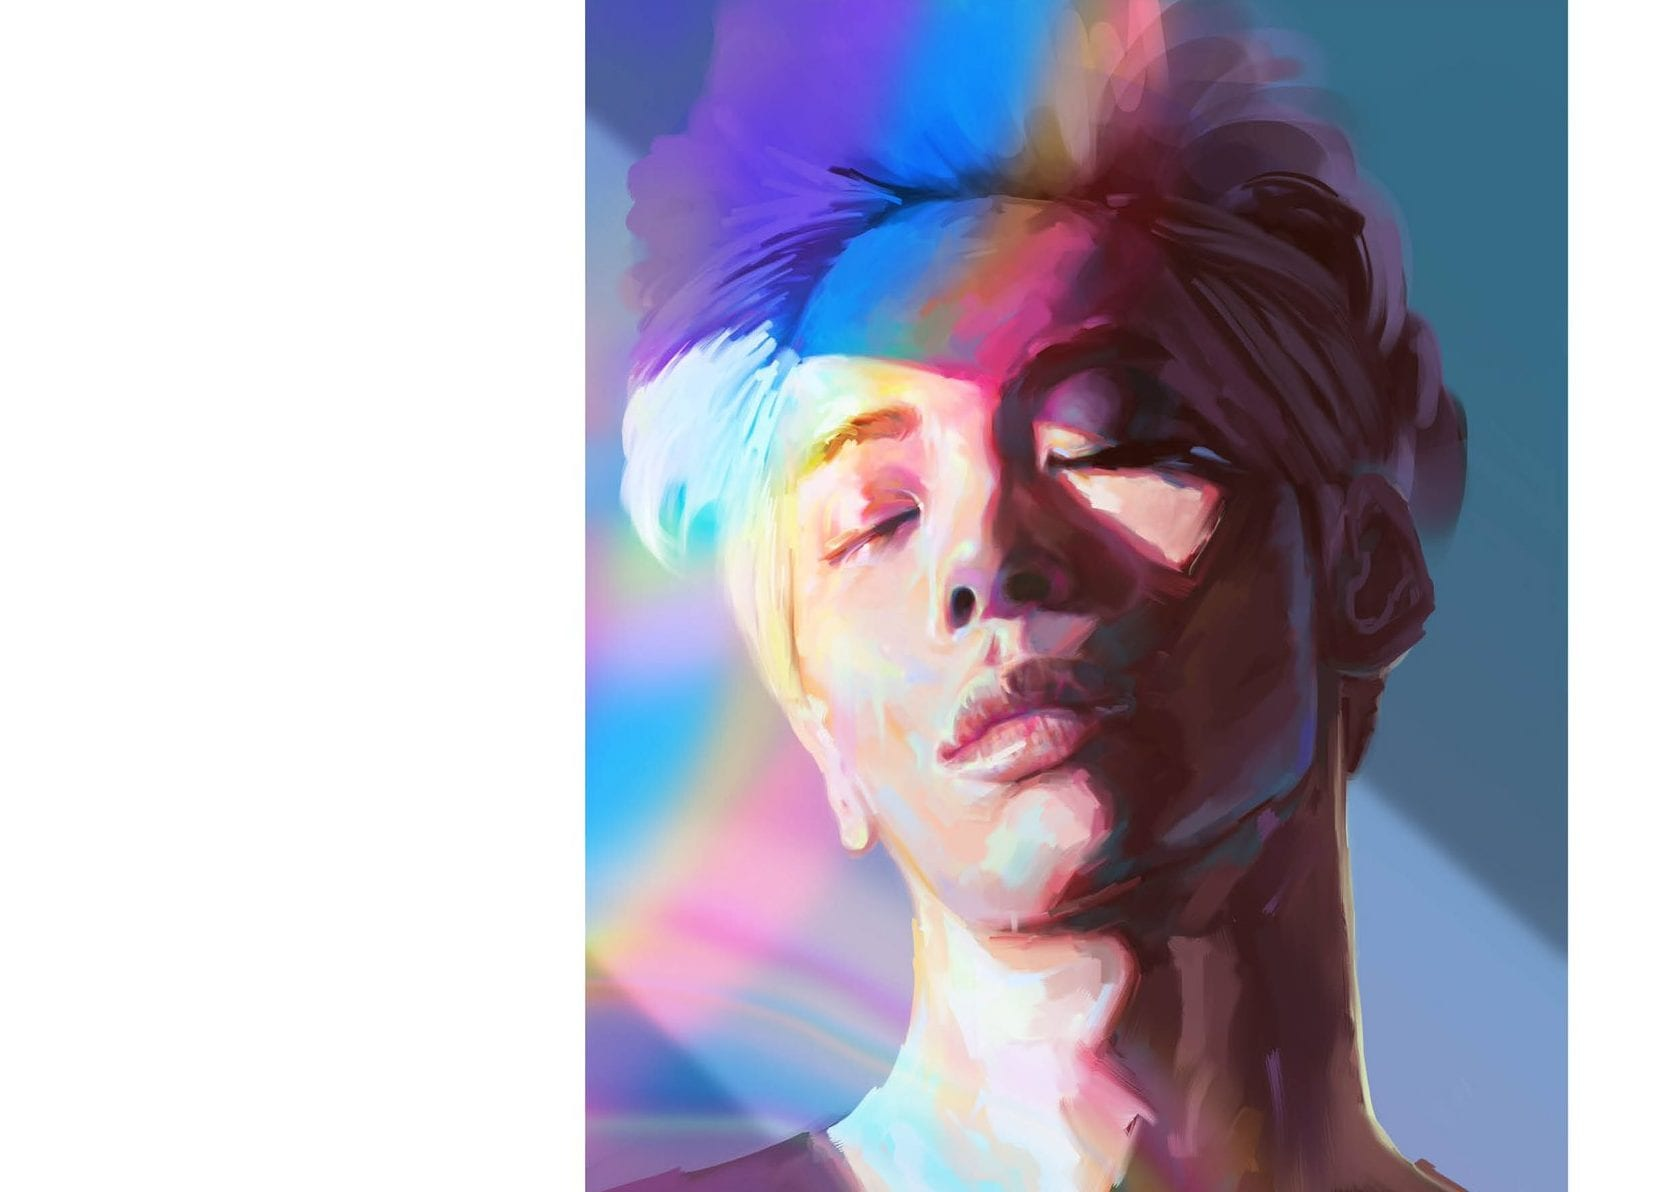 """SHINee's Jonghyun To Release Solo Album """"Story Op. 2"""" This Month"""